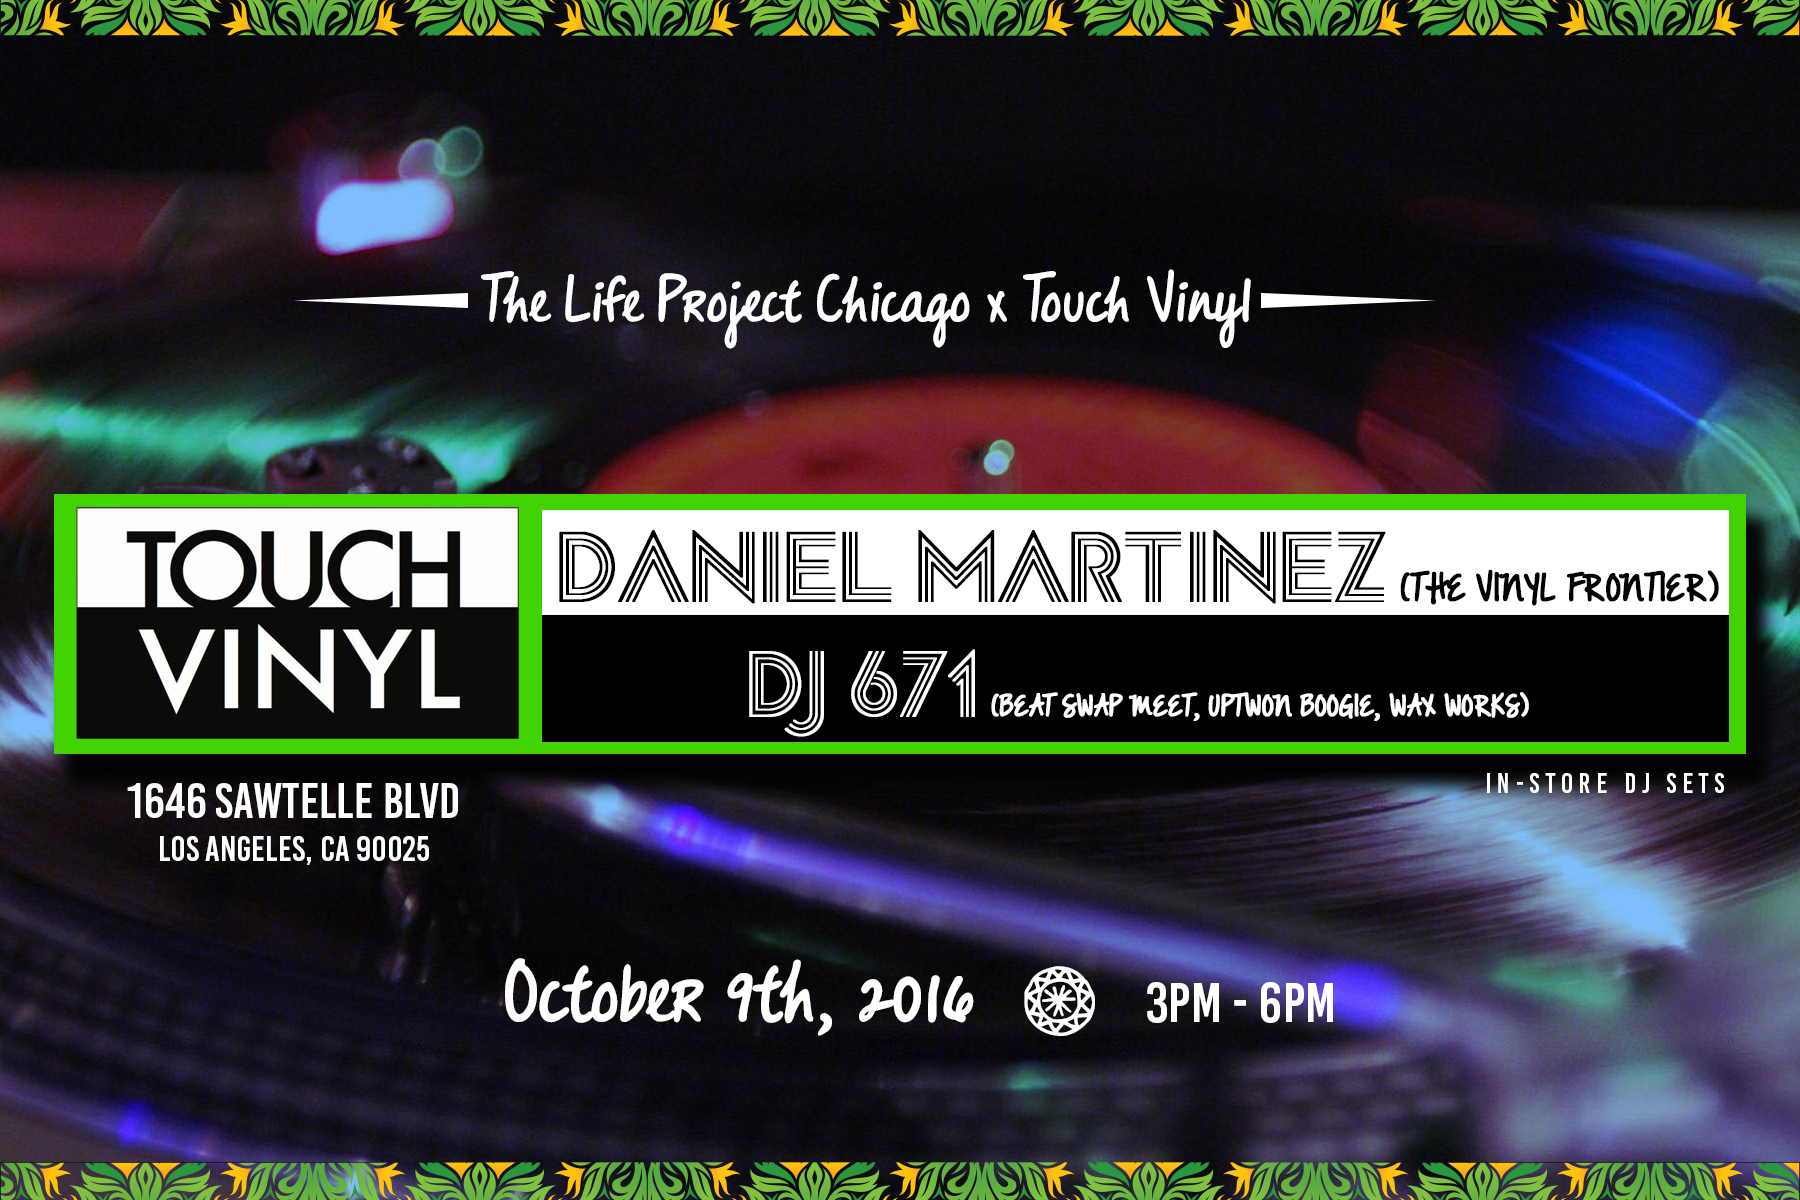 Enjoy vinyl sounds from our chitown friends!